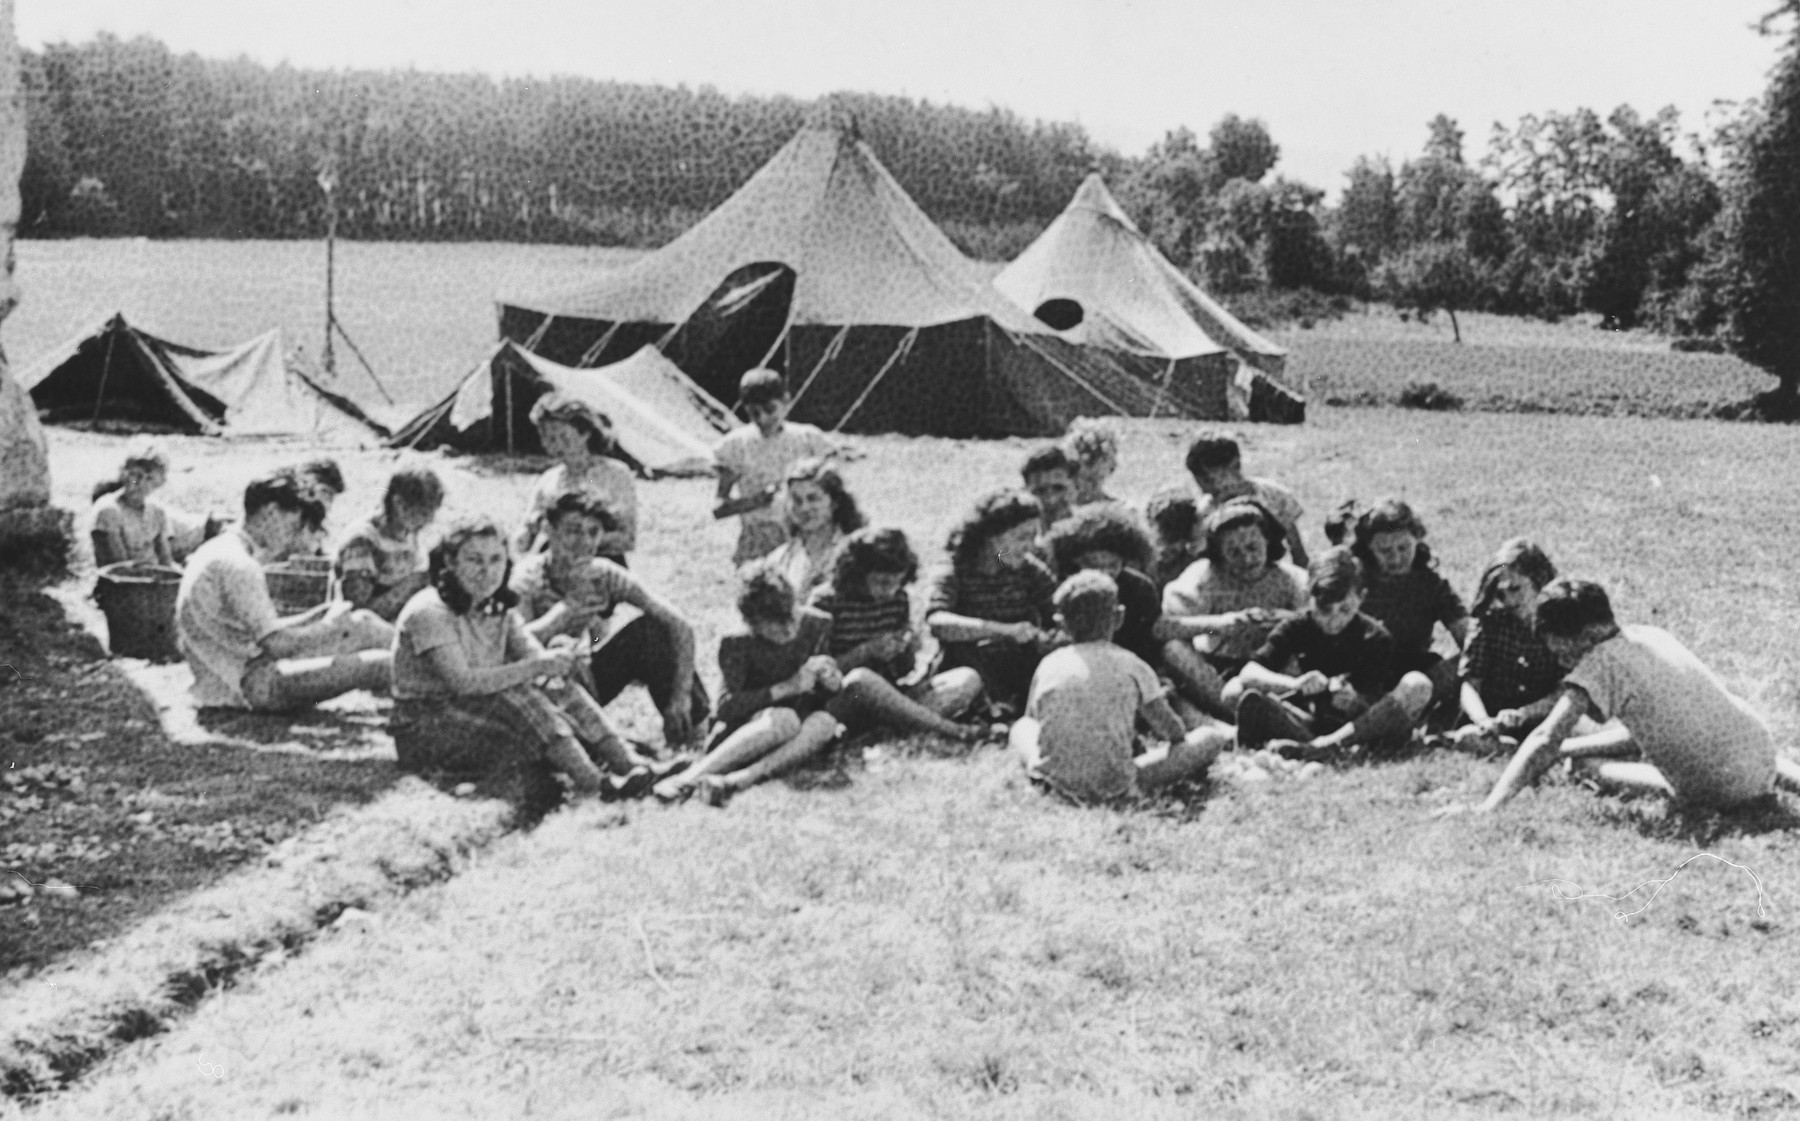 Jewish children go camping in Ambert on an excursion sponsored by the OSE.